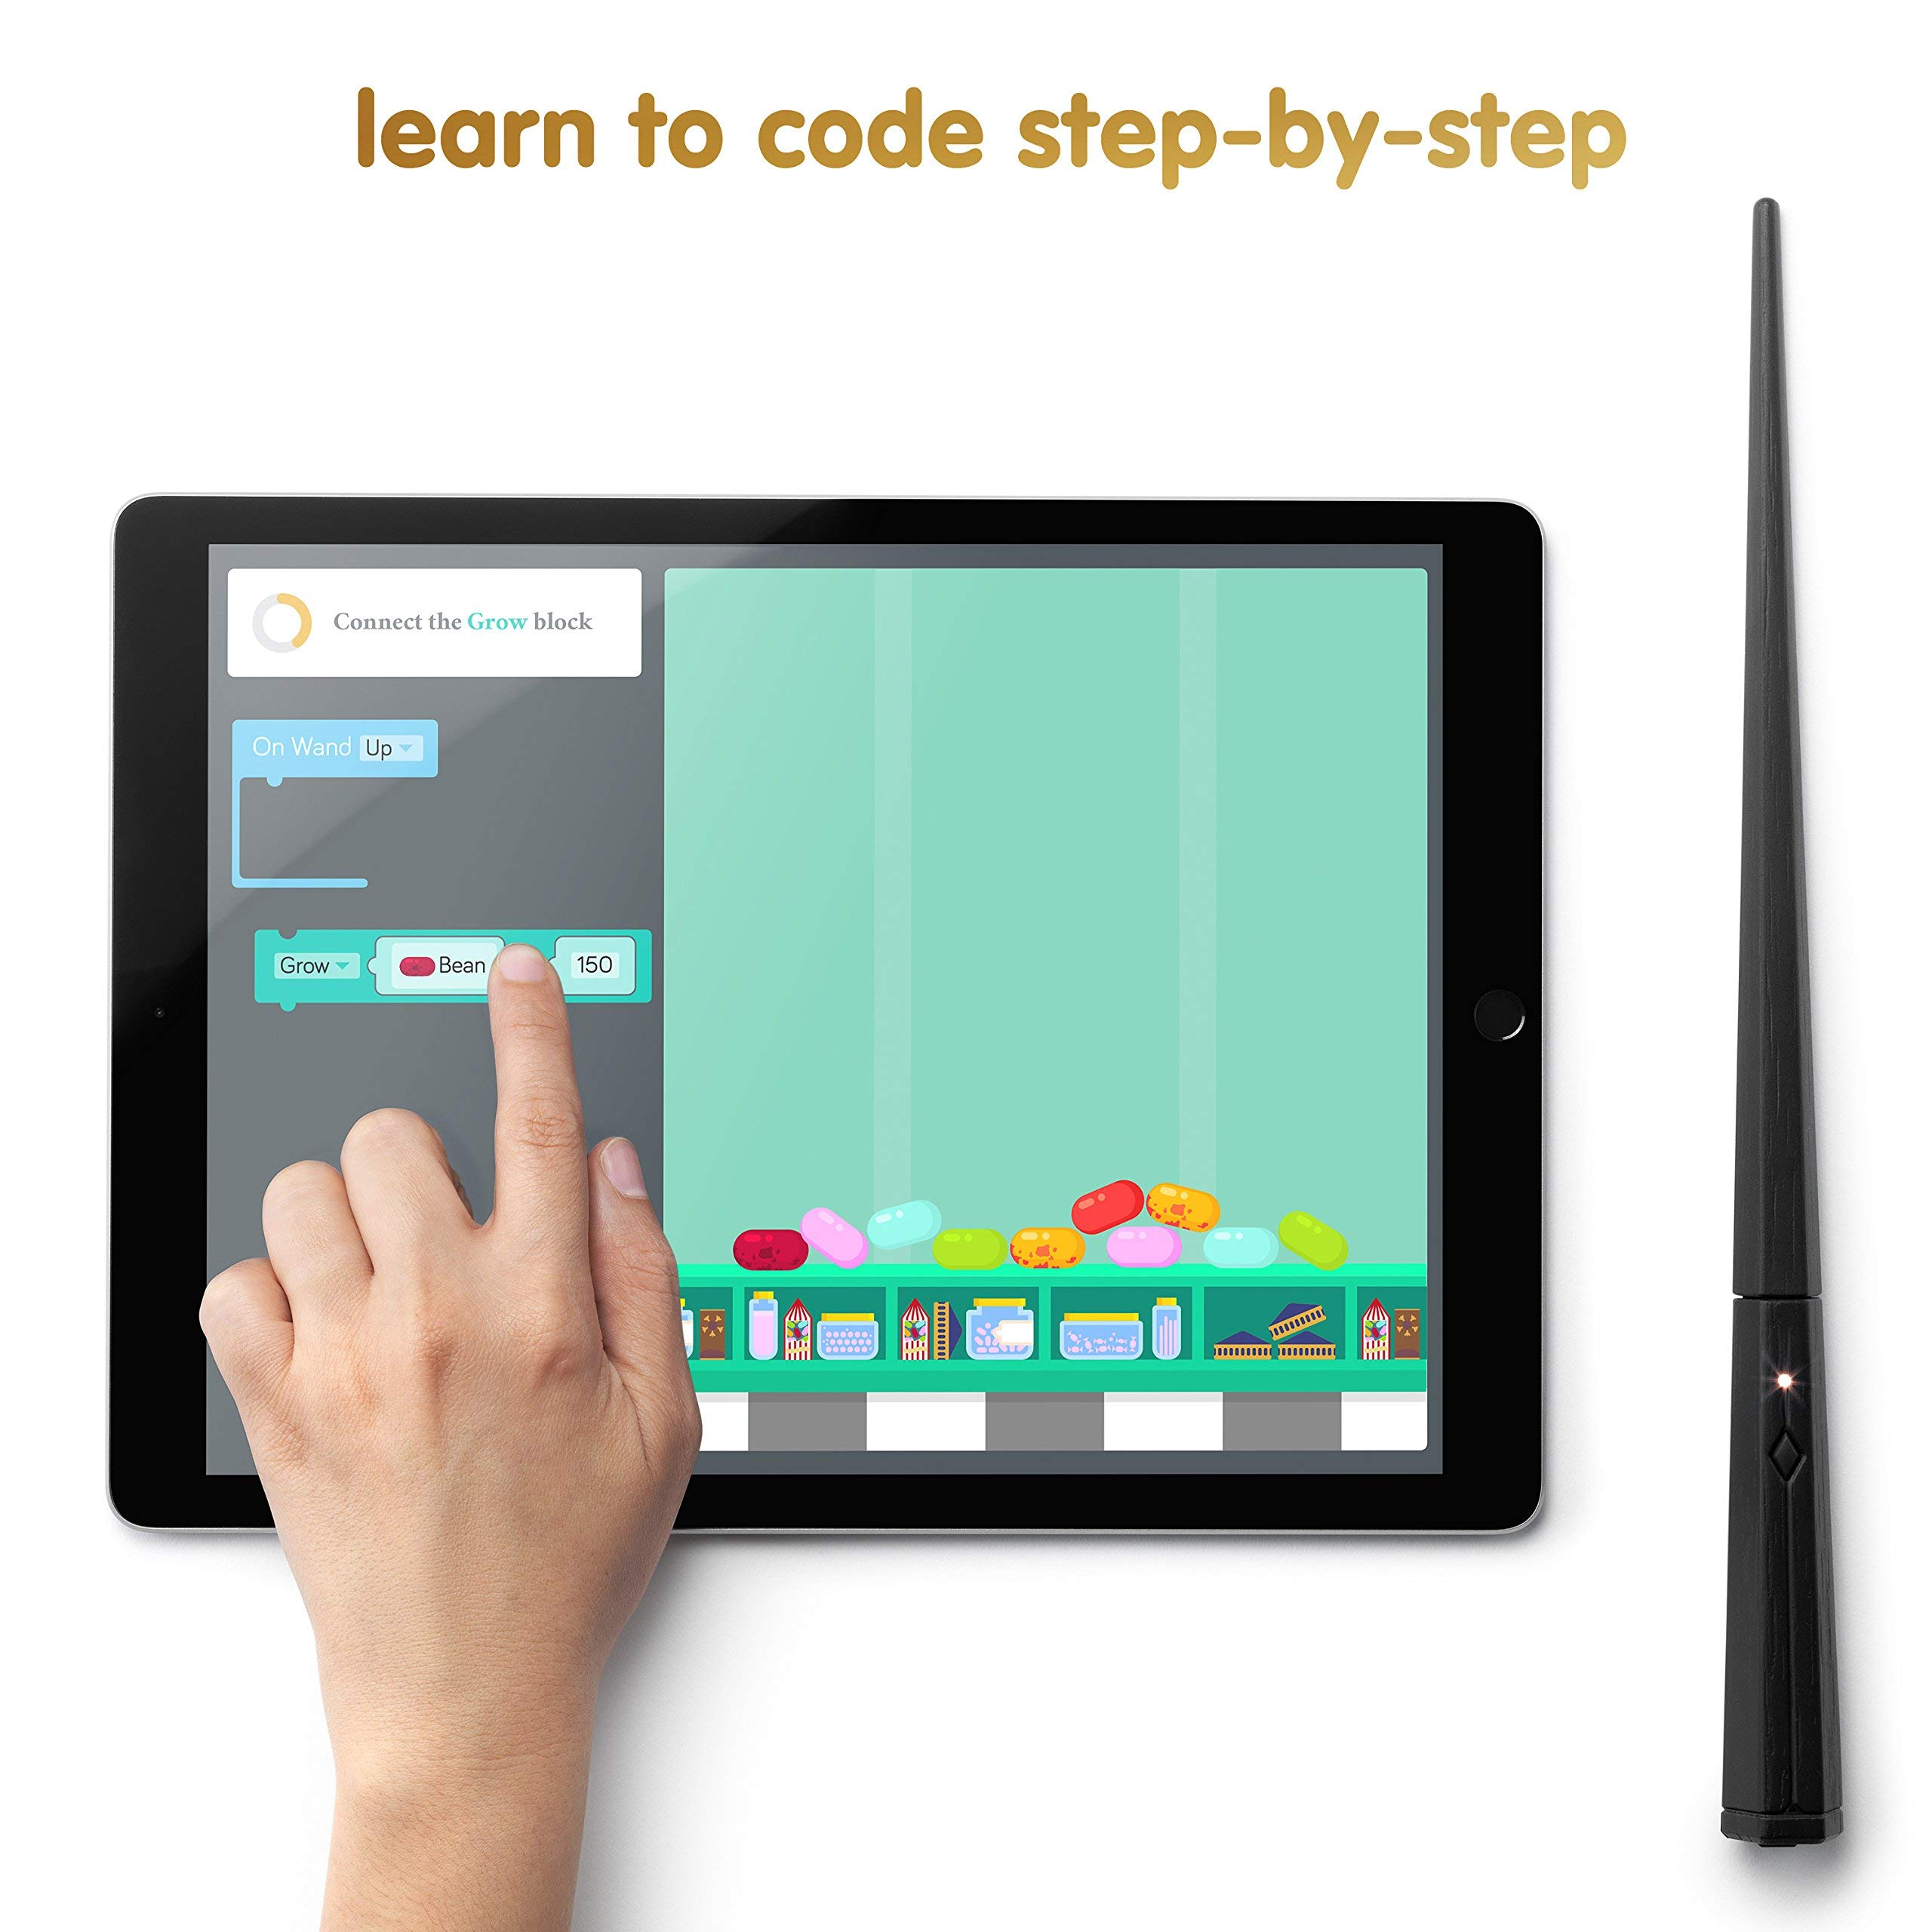 Kano Harry Potter Coding Kit - Build a Wand. Learn To Code. Make Magic. (Renewed) by Kano (Image #4)